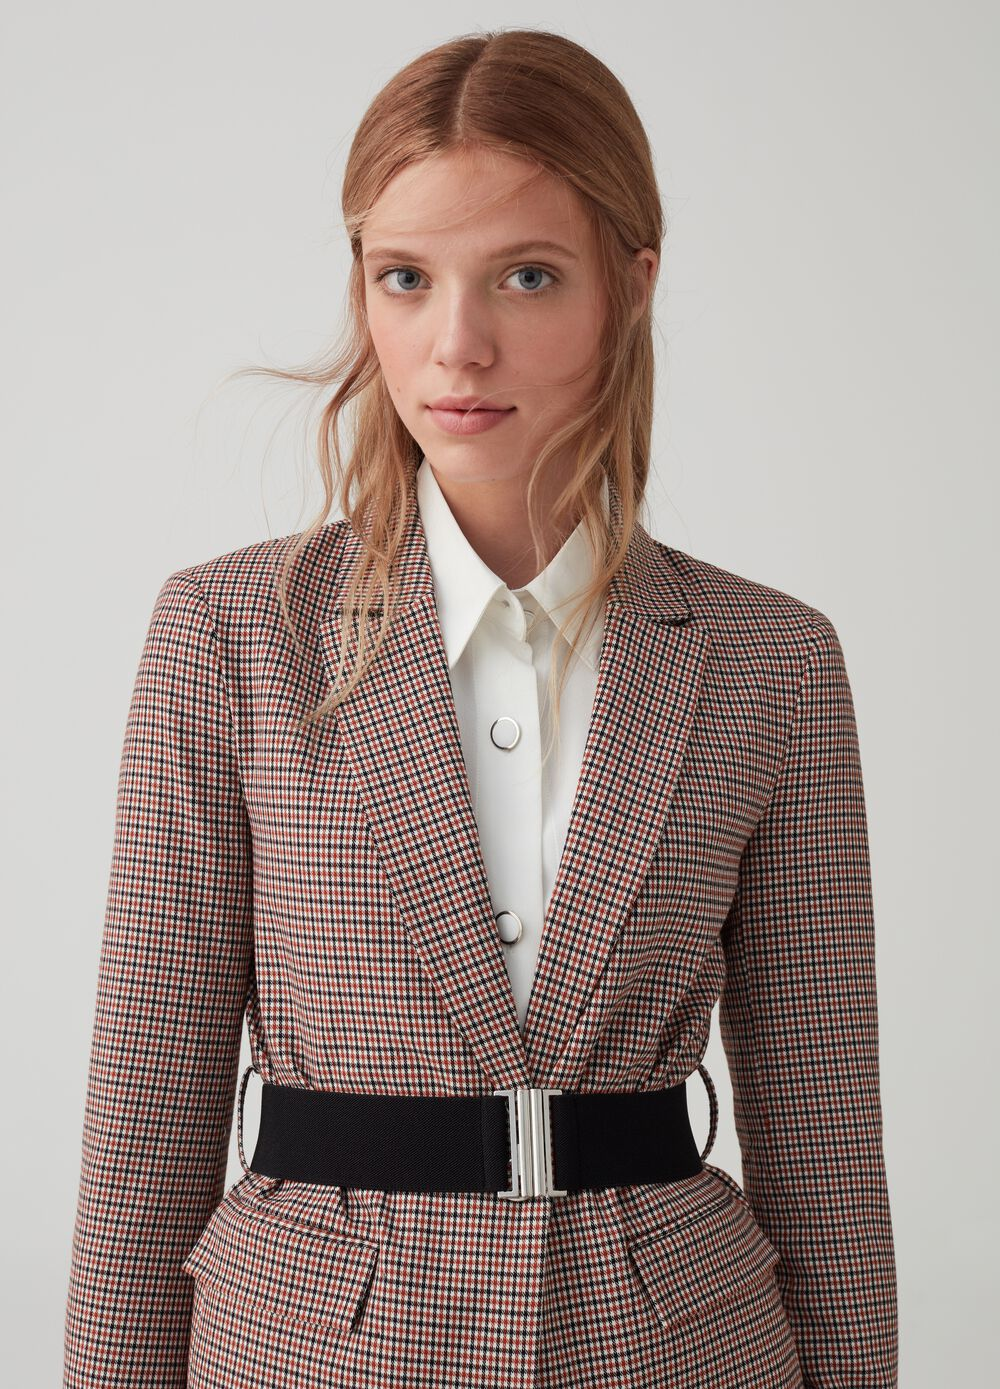 Blazer with micro-check pattern and belt